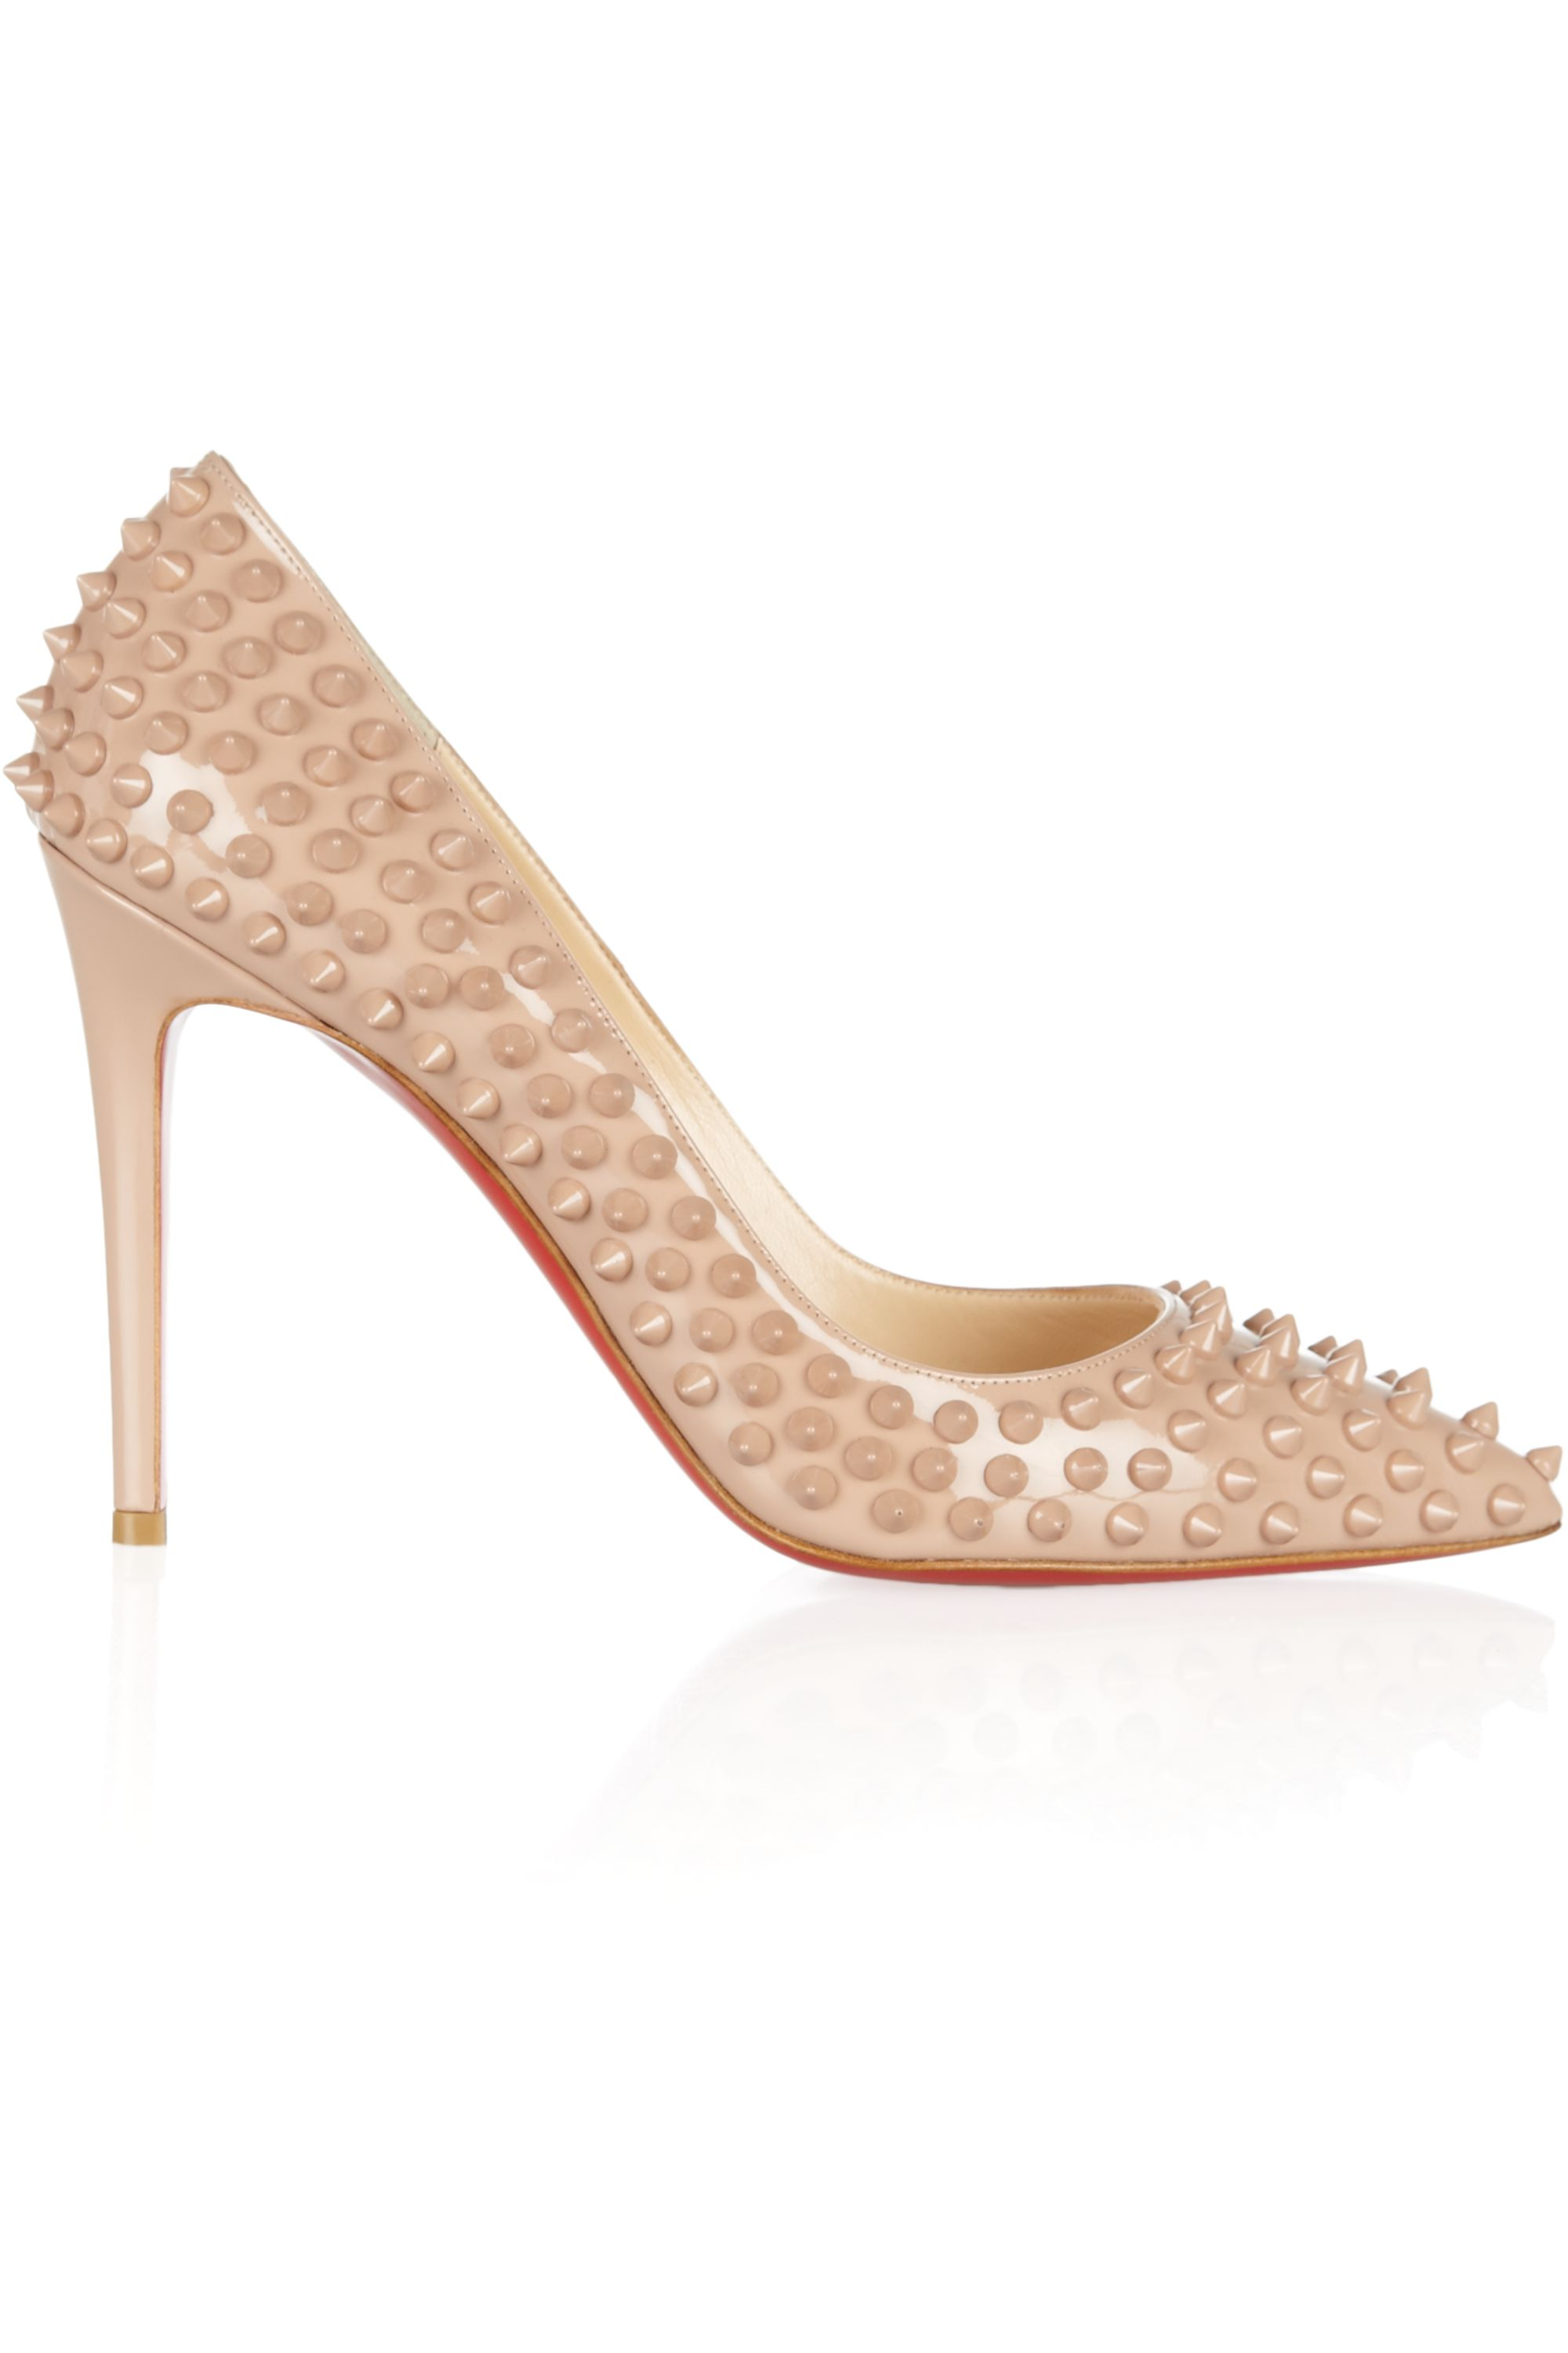 Christian Louboutin Pigalle 100 spiked patent-leather pumps